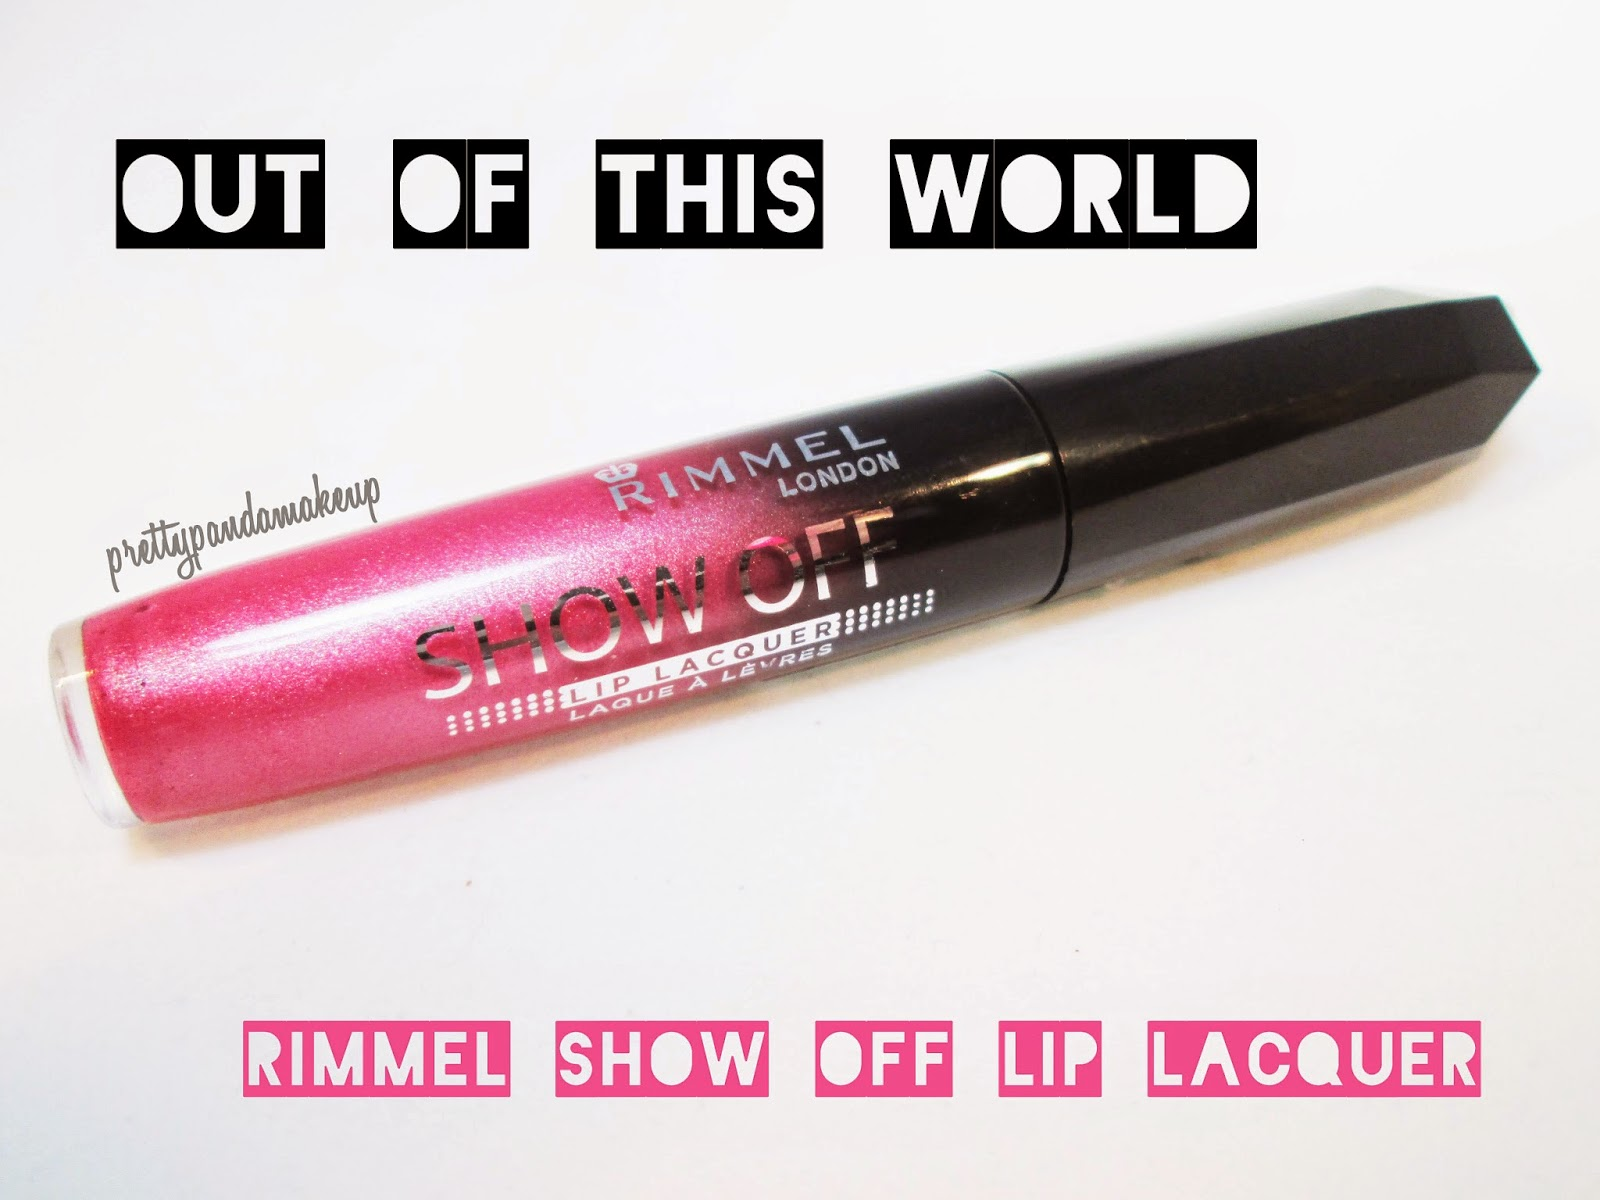 Rimmel Show Off Lip Lacquer in Out of This World Swatches and Review